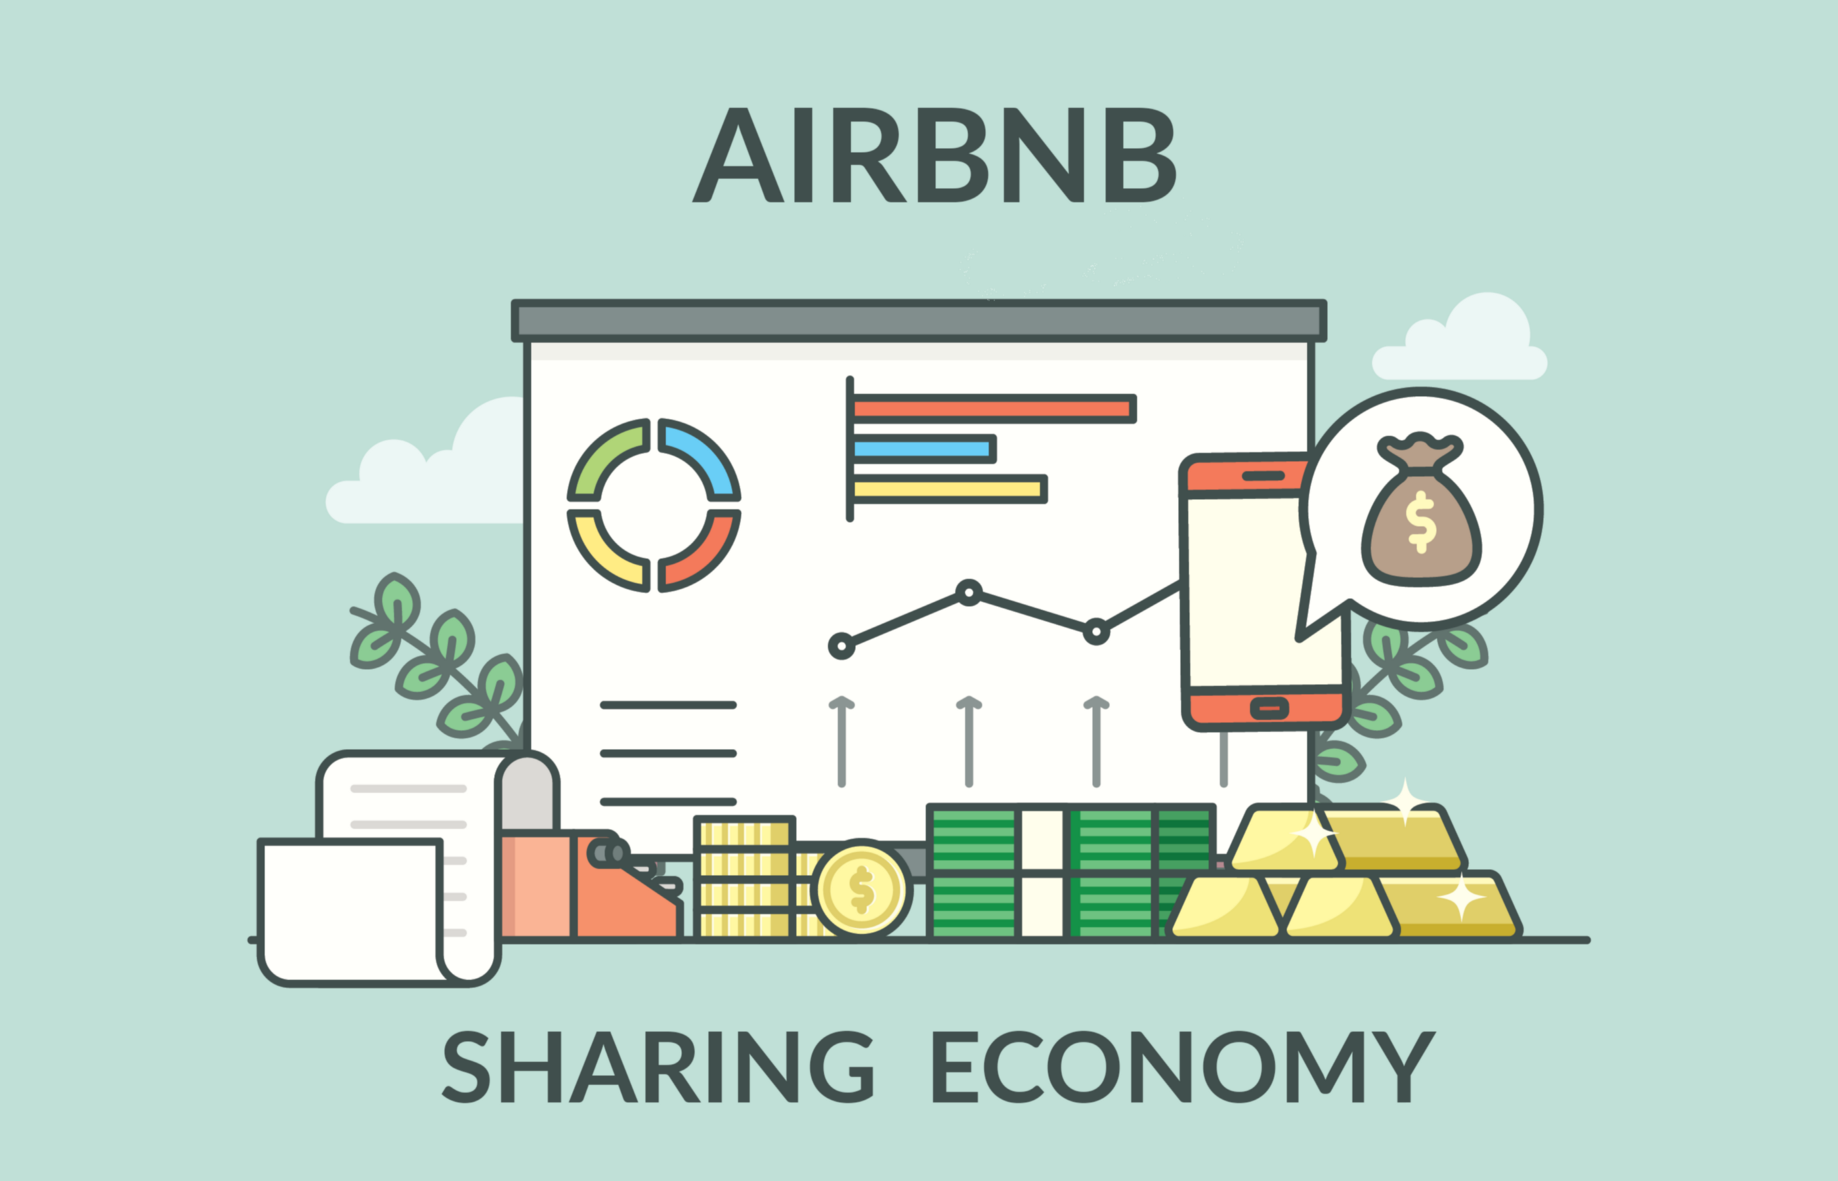 Sharing is Caring: The Positive Influence of the Airbnb Sharing Economy